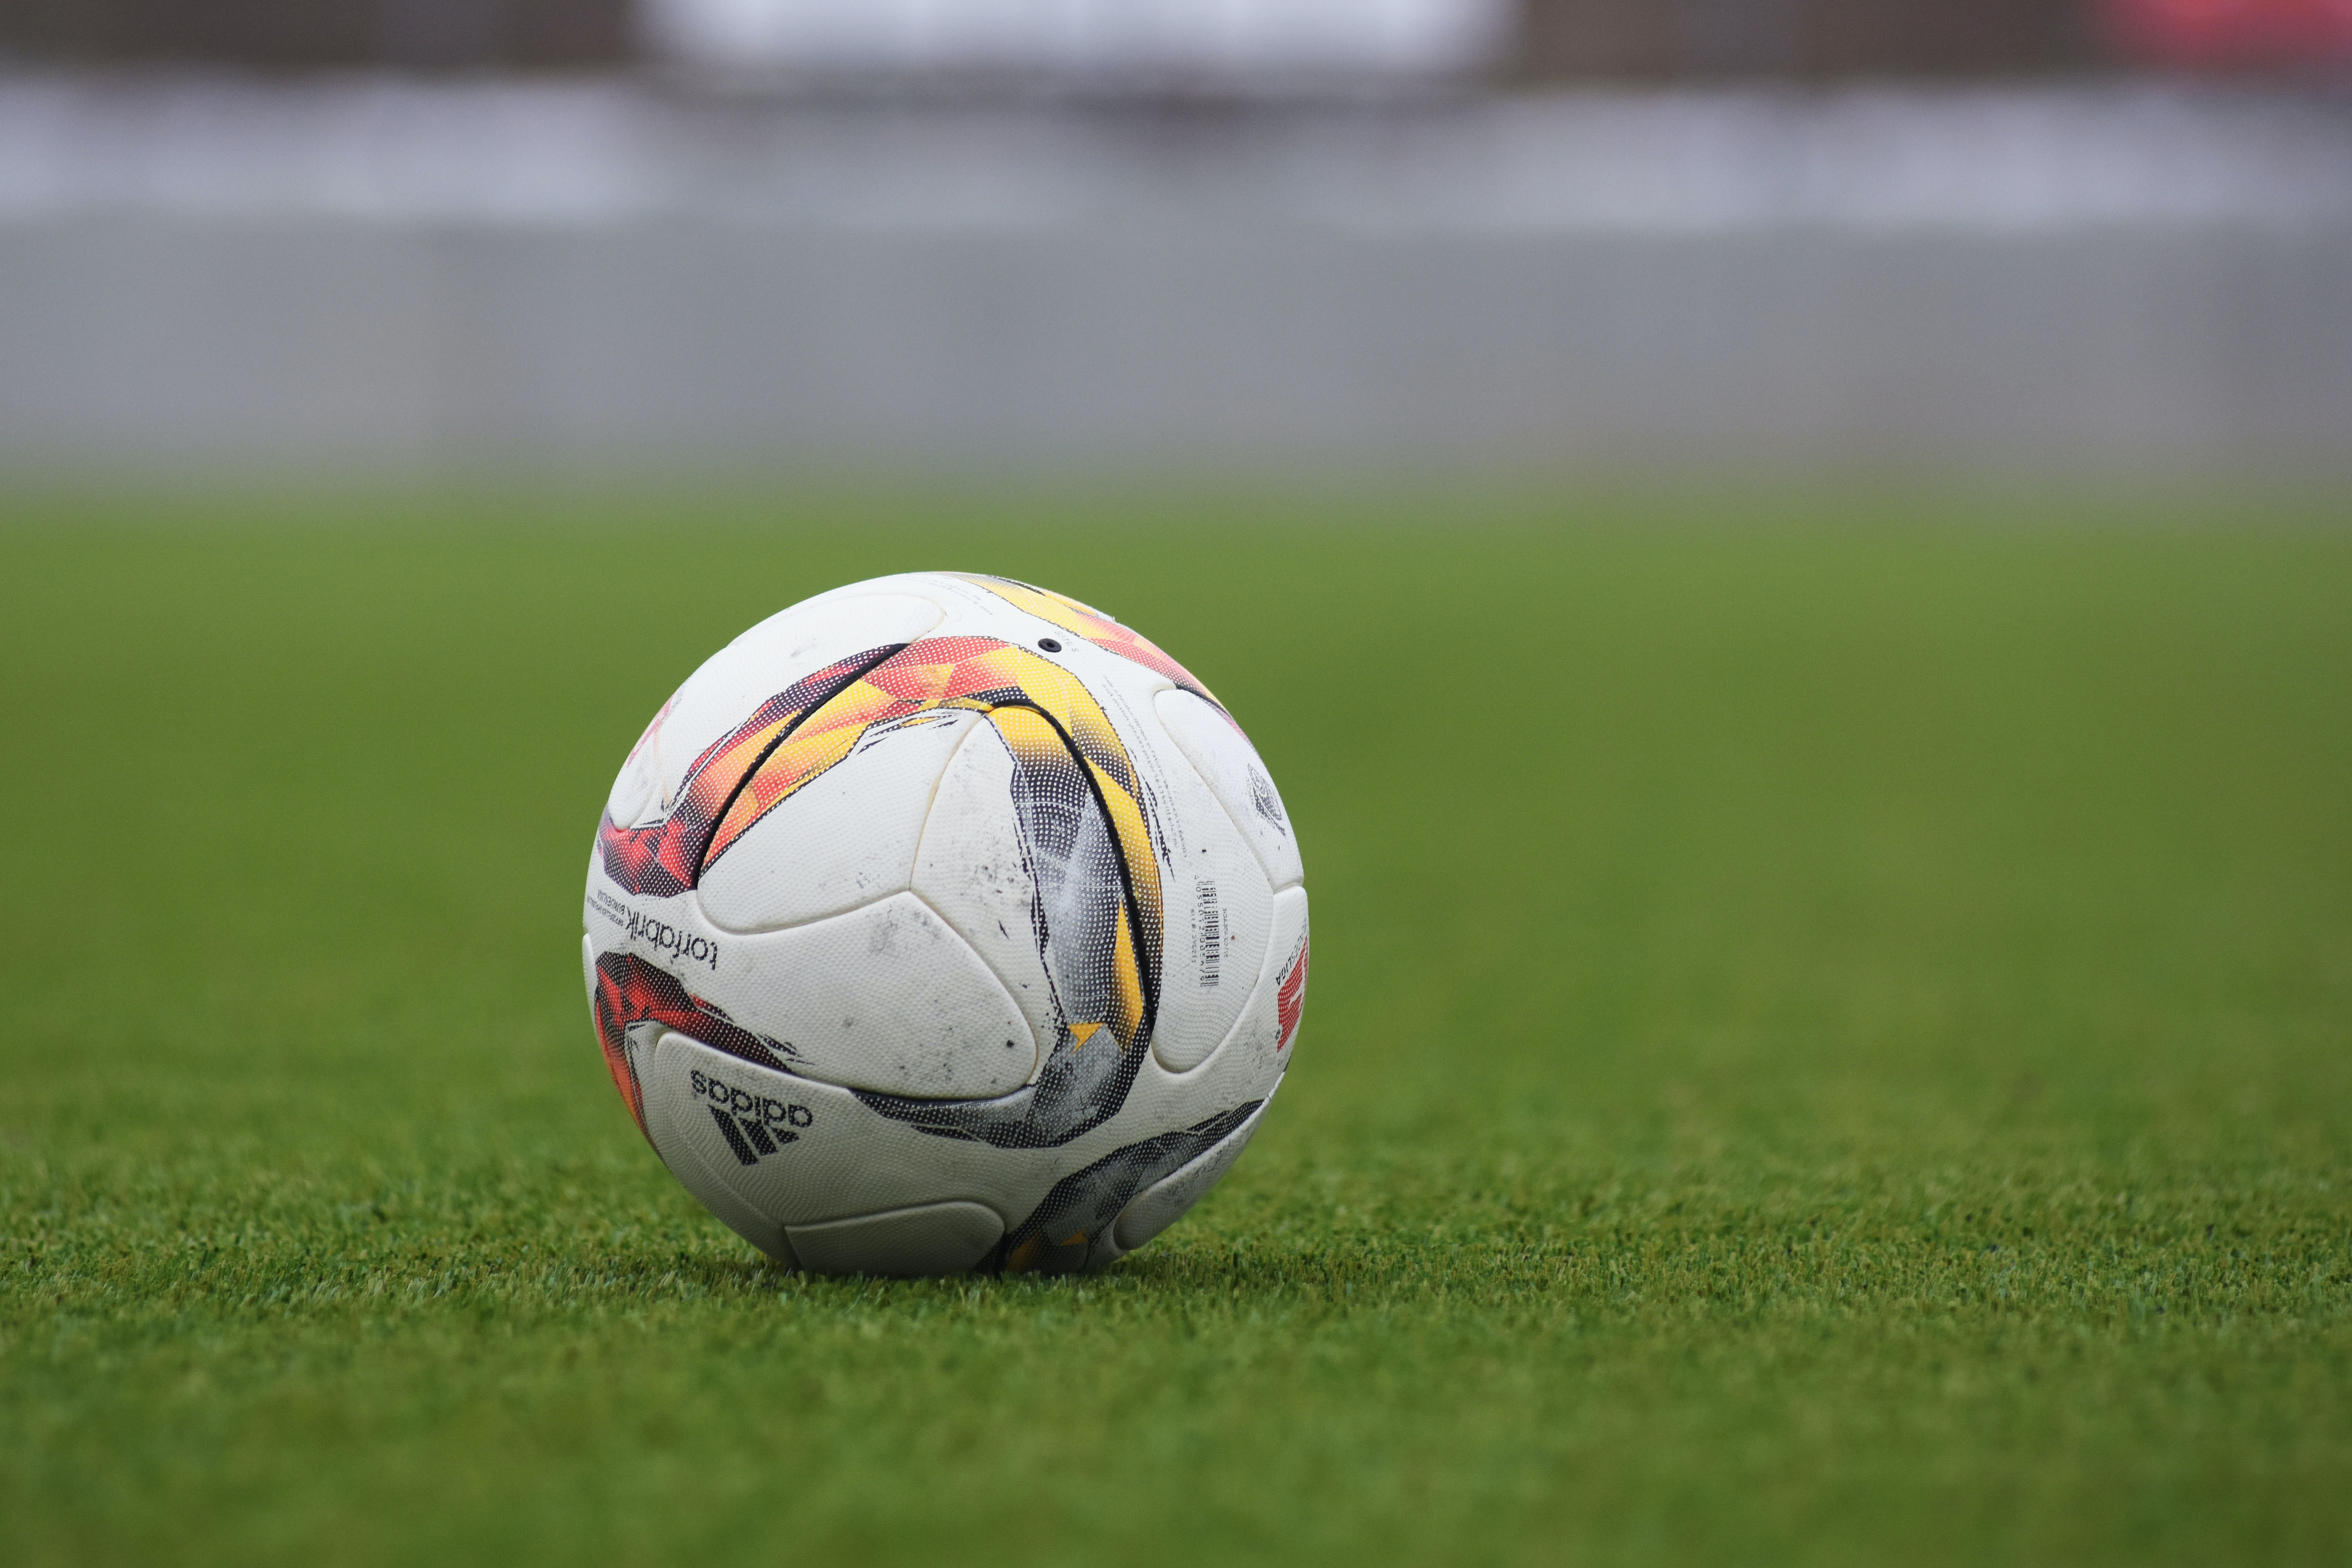 A soccer ball on the grass on a field